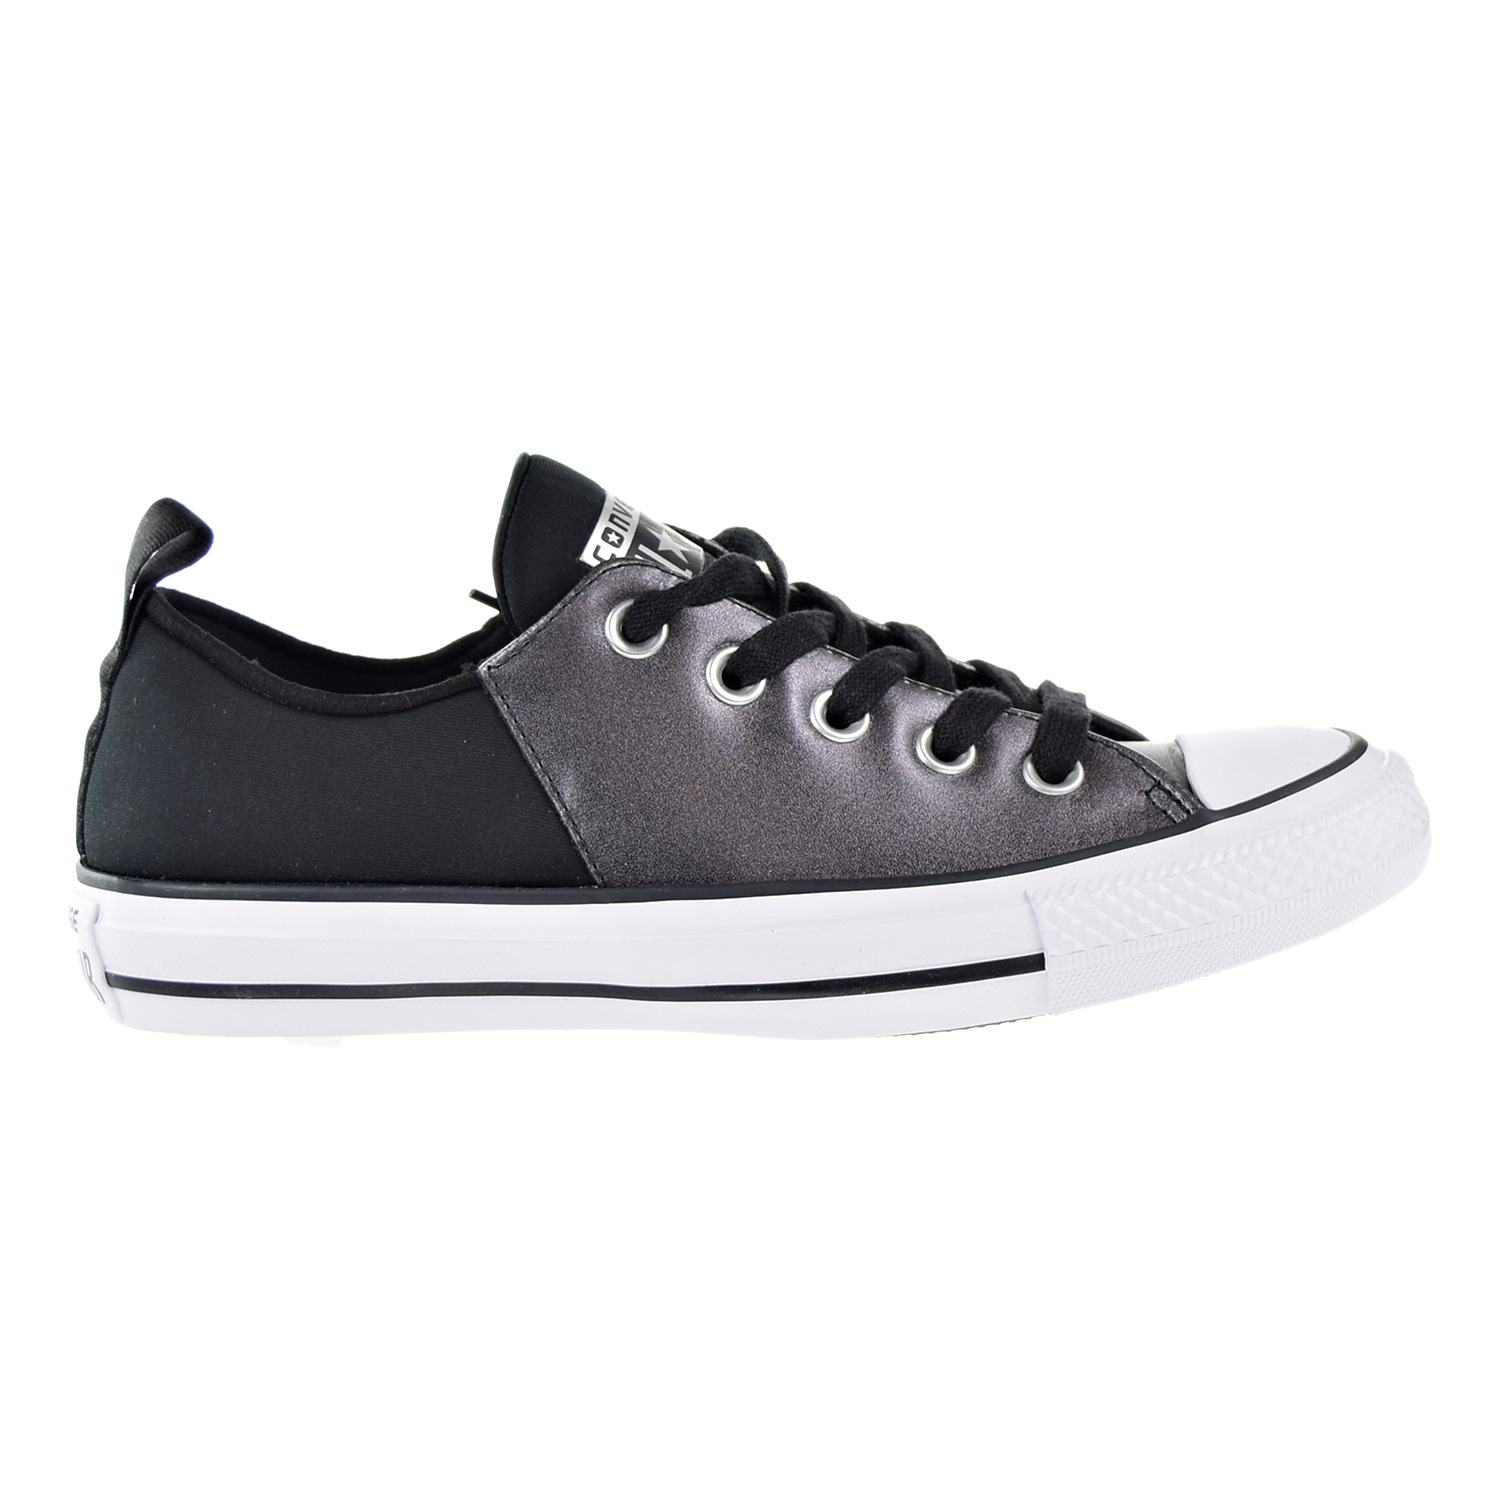 Converse Chuck Taylor All Star Sloane Glam Leather Low To...